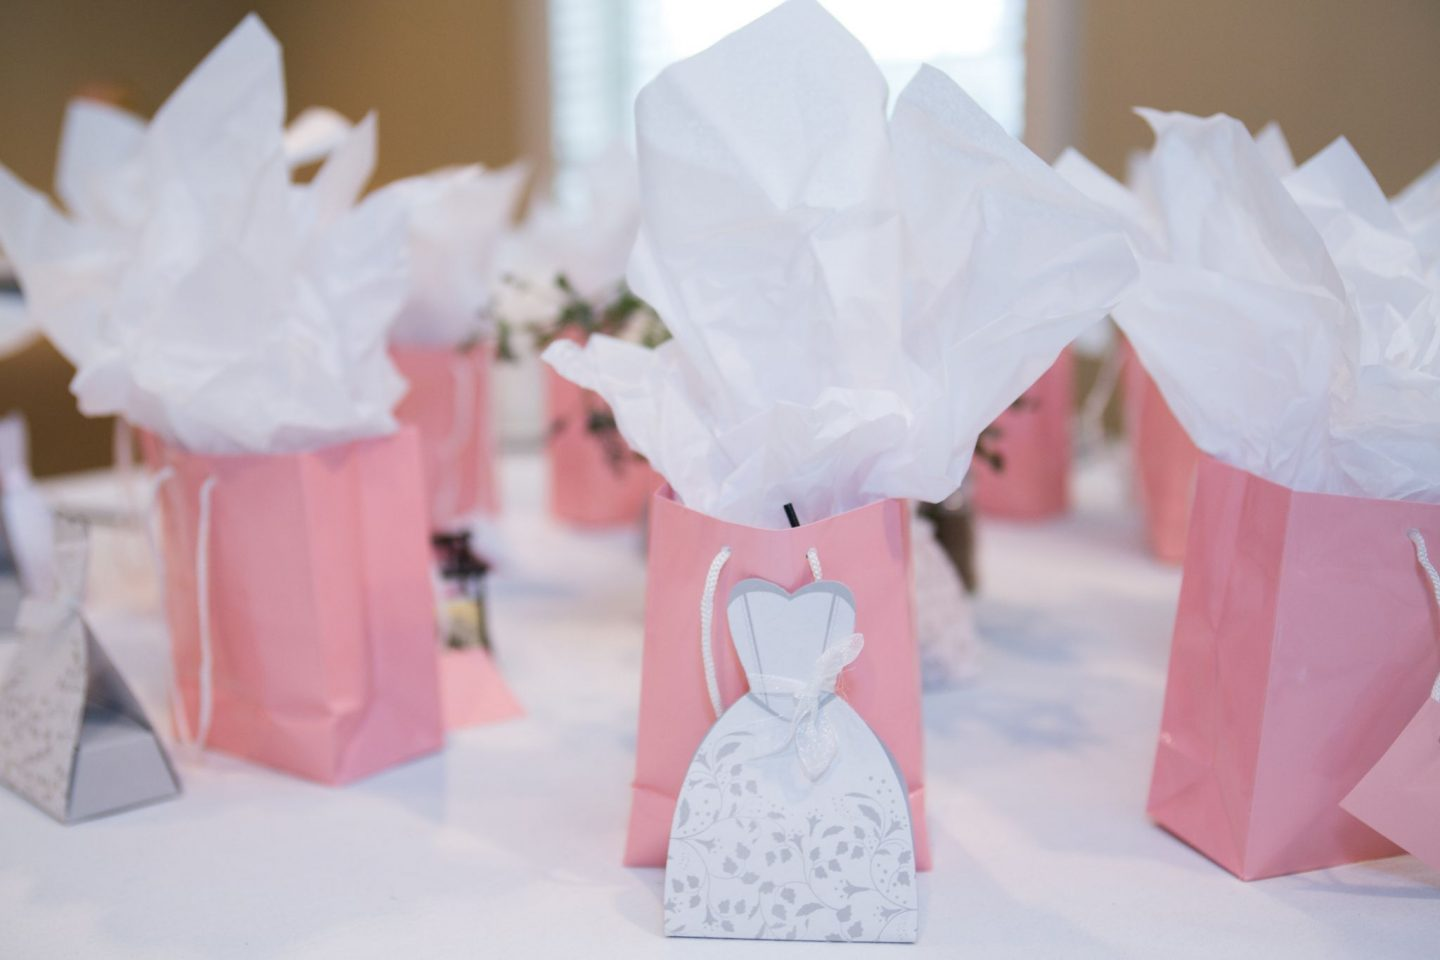 Bubbly & Brunch & A Bridal Shower - The Bohemian Crown